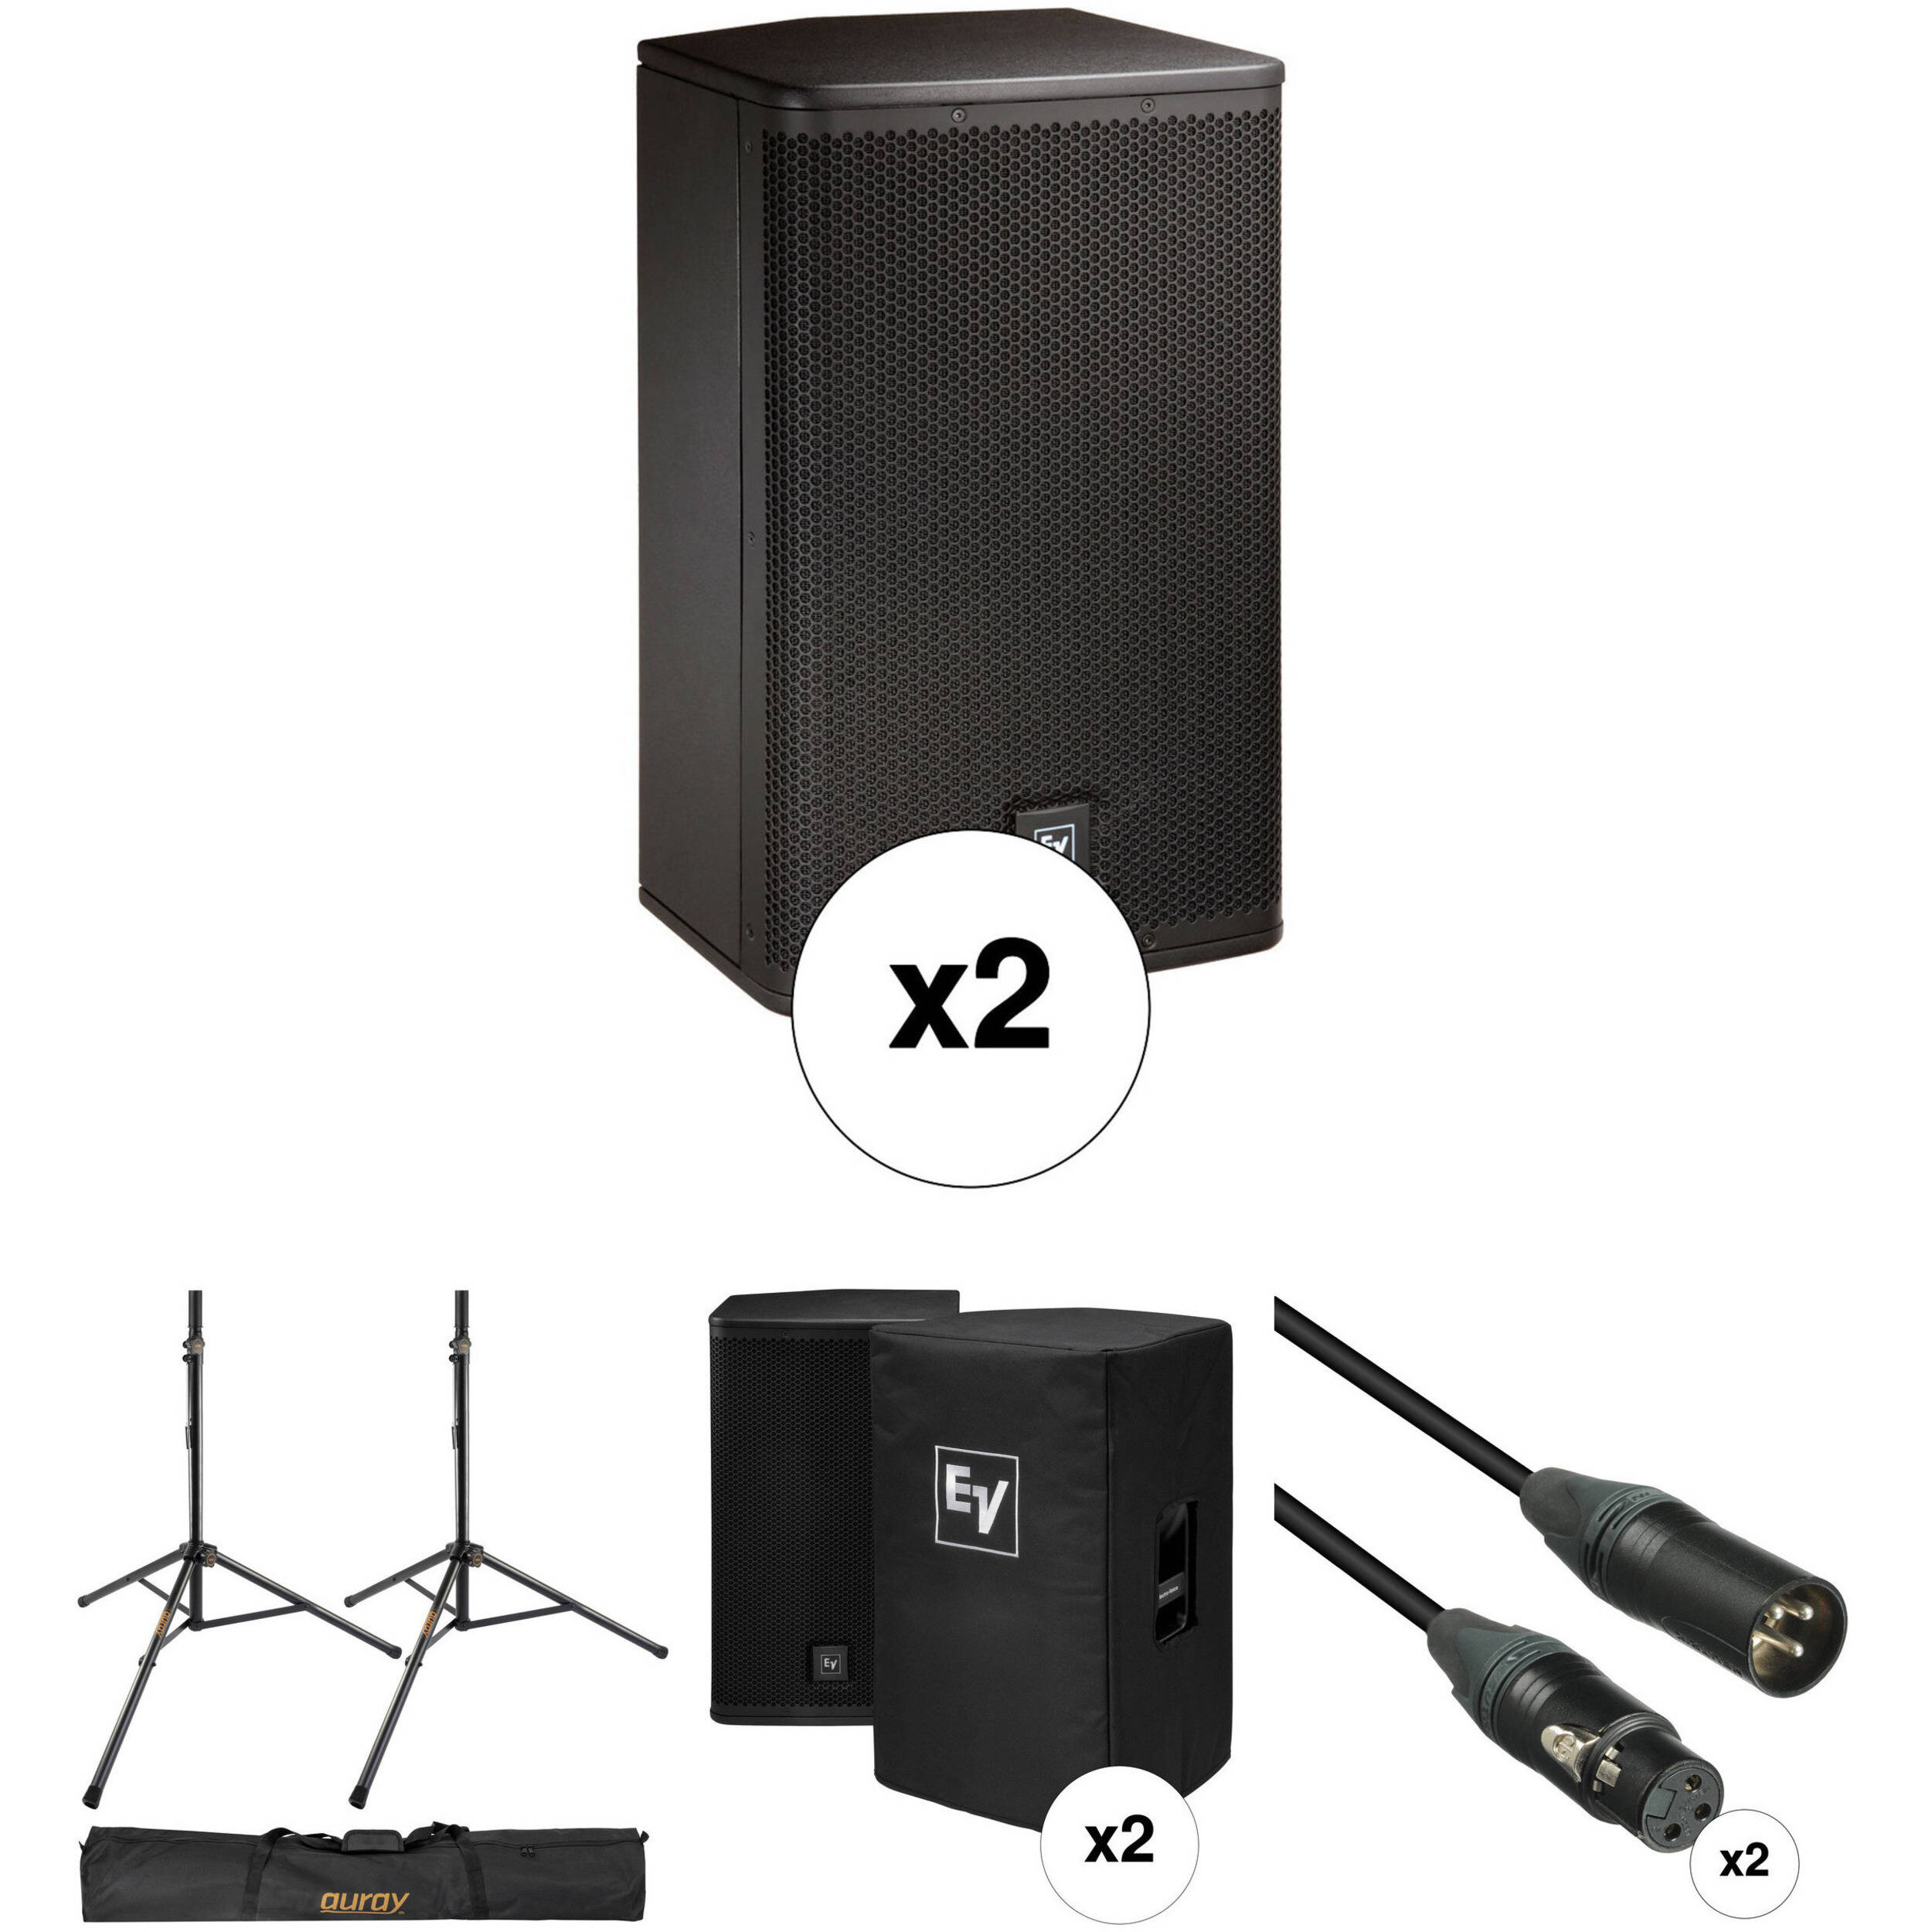 speakers with stands. electro-voice elx112p kit with 2x speakers, stands, covers, cables, and speakers stands